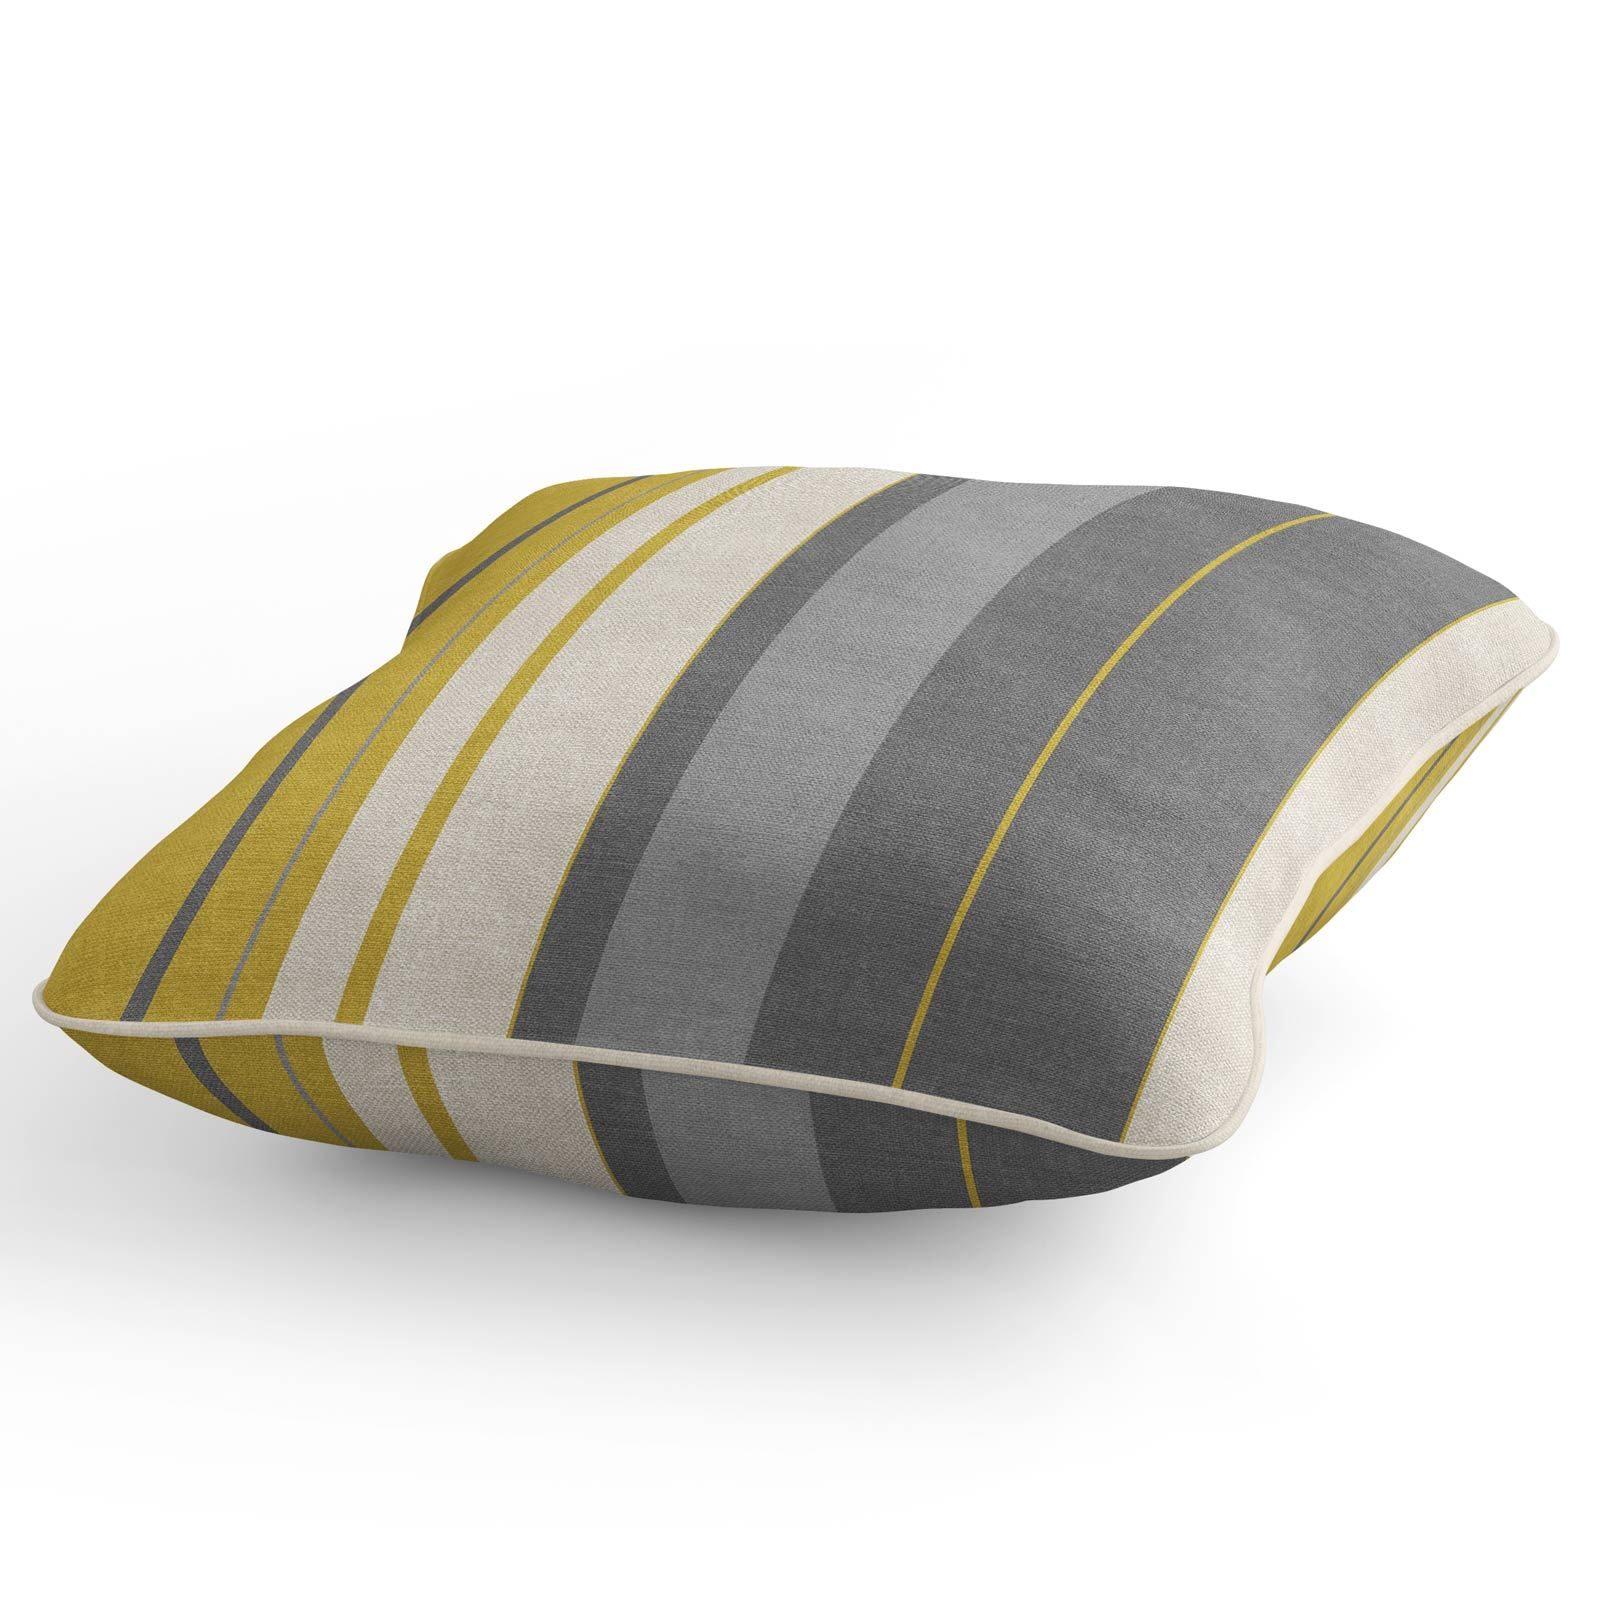 Grey-Ochre-Mustard-Cushion-Cover-Collection-17-034-18-034-Covers-Filled-Cushions thumbnail 99